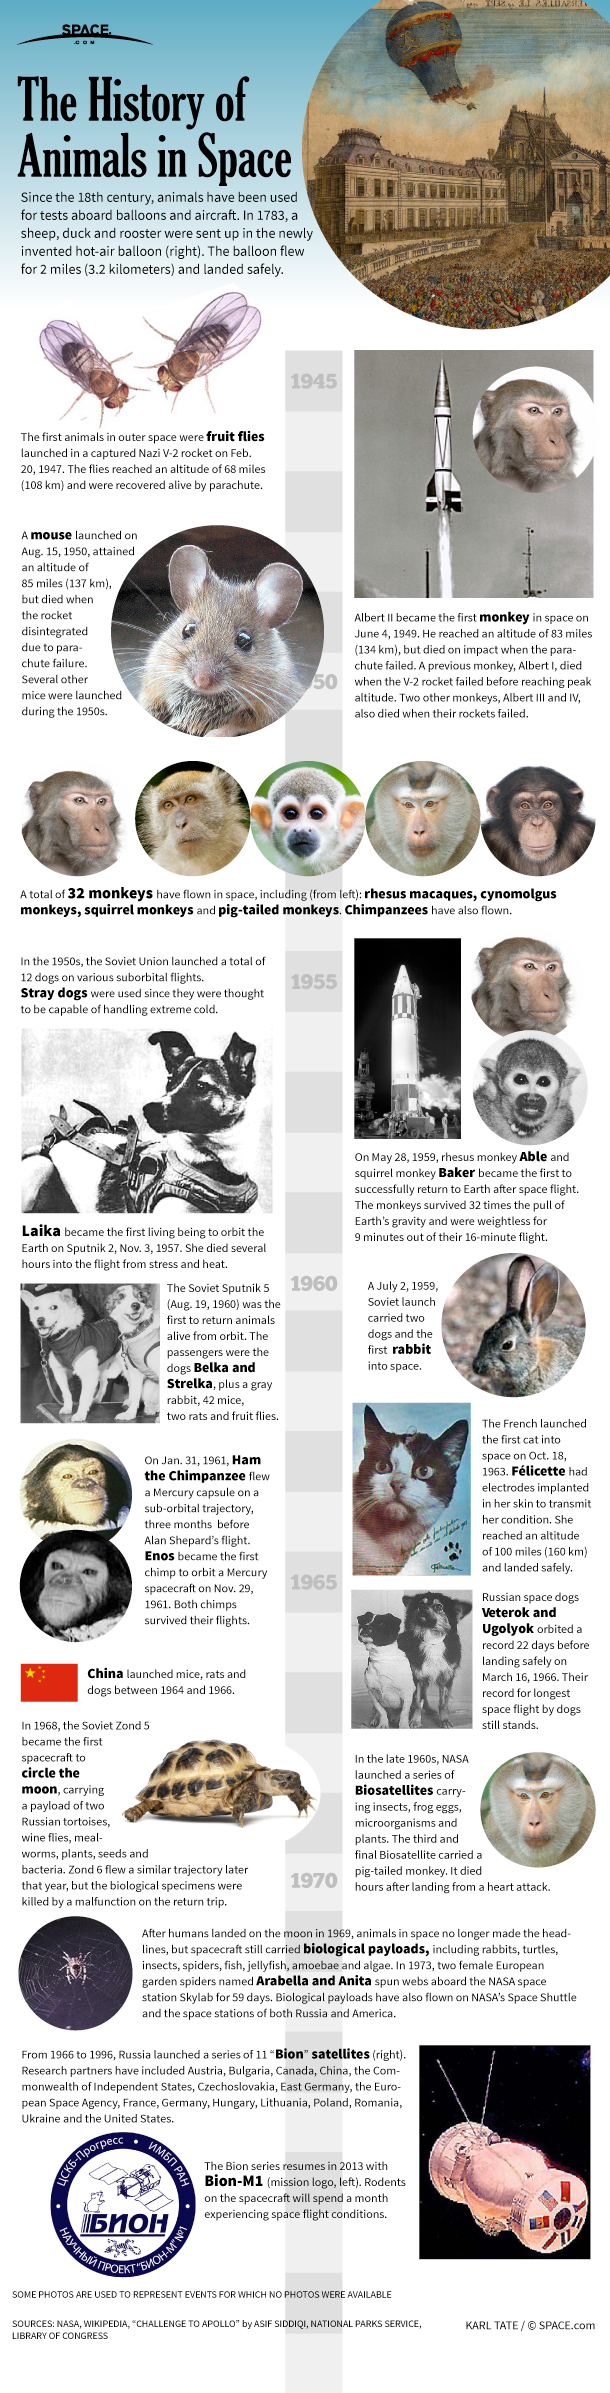 History of Animals in Space (Infographic)